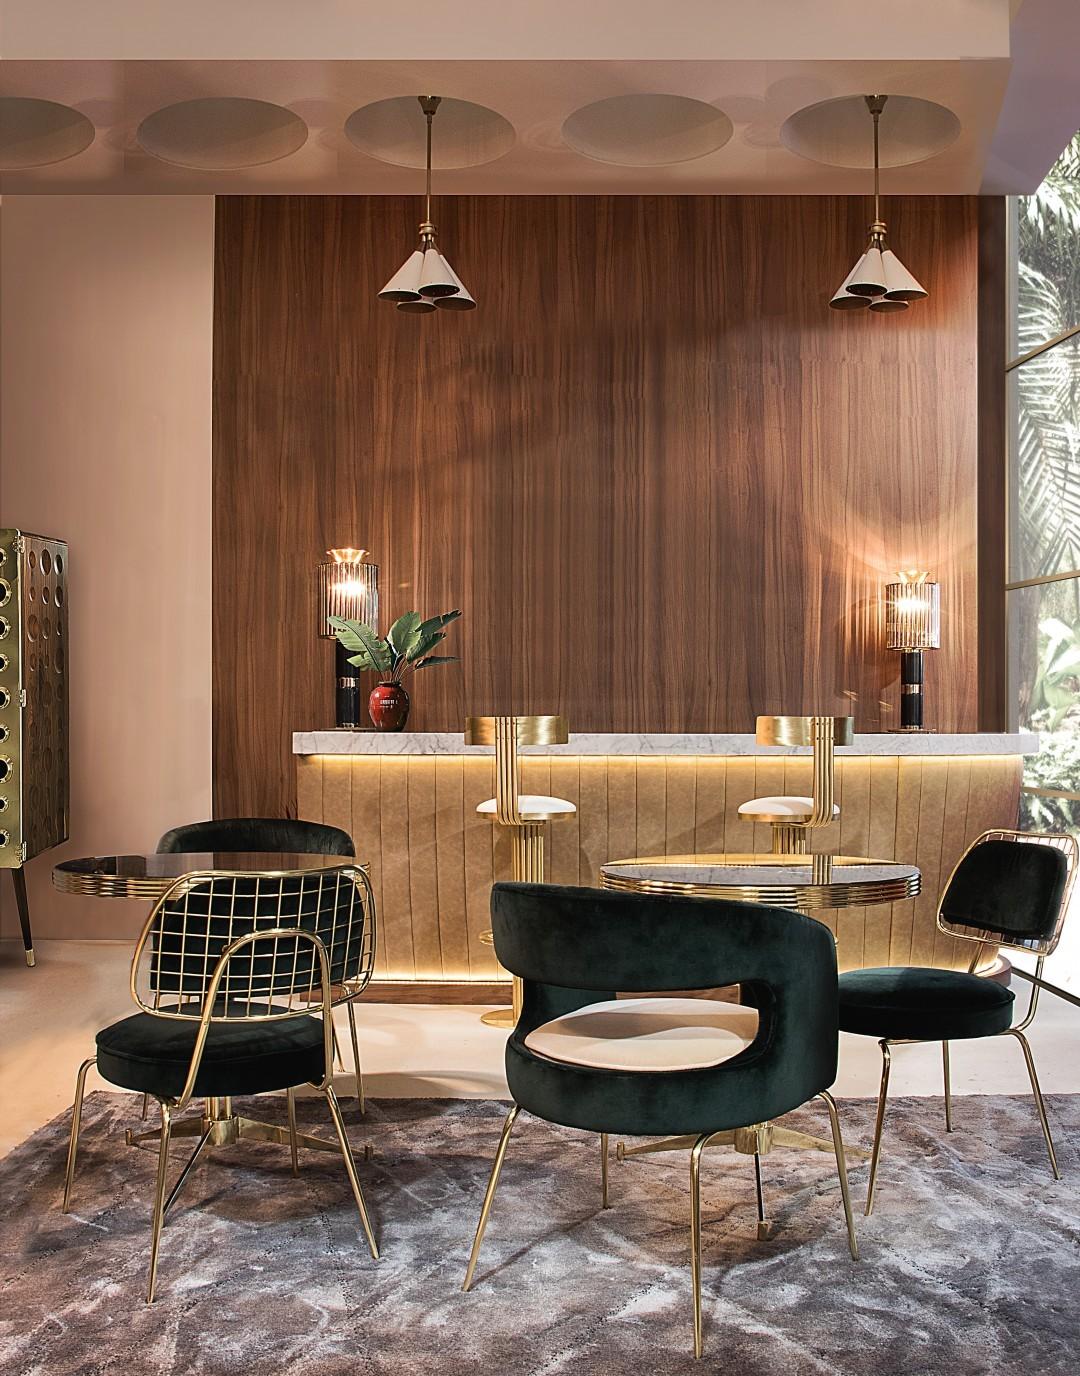 Maison et Objet 2020: A Travel in Time That You Can't Miss! maison et objet Maison et Objet 2020: A Travel in Time That You Can't Miss! Maison Object 2020 A Time Travel You Cant Miss 3